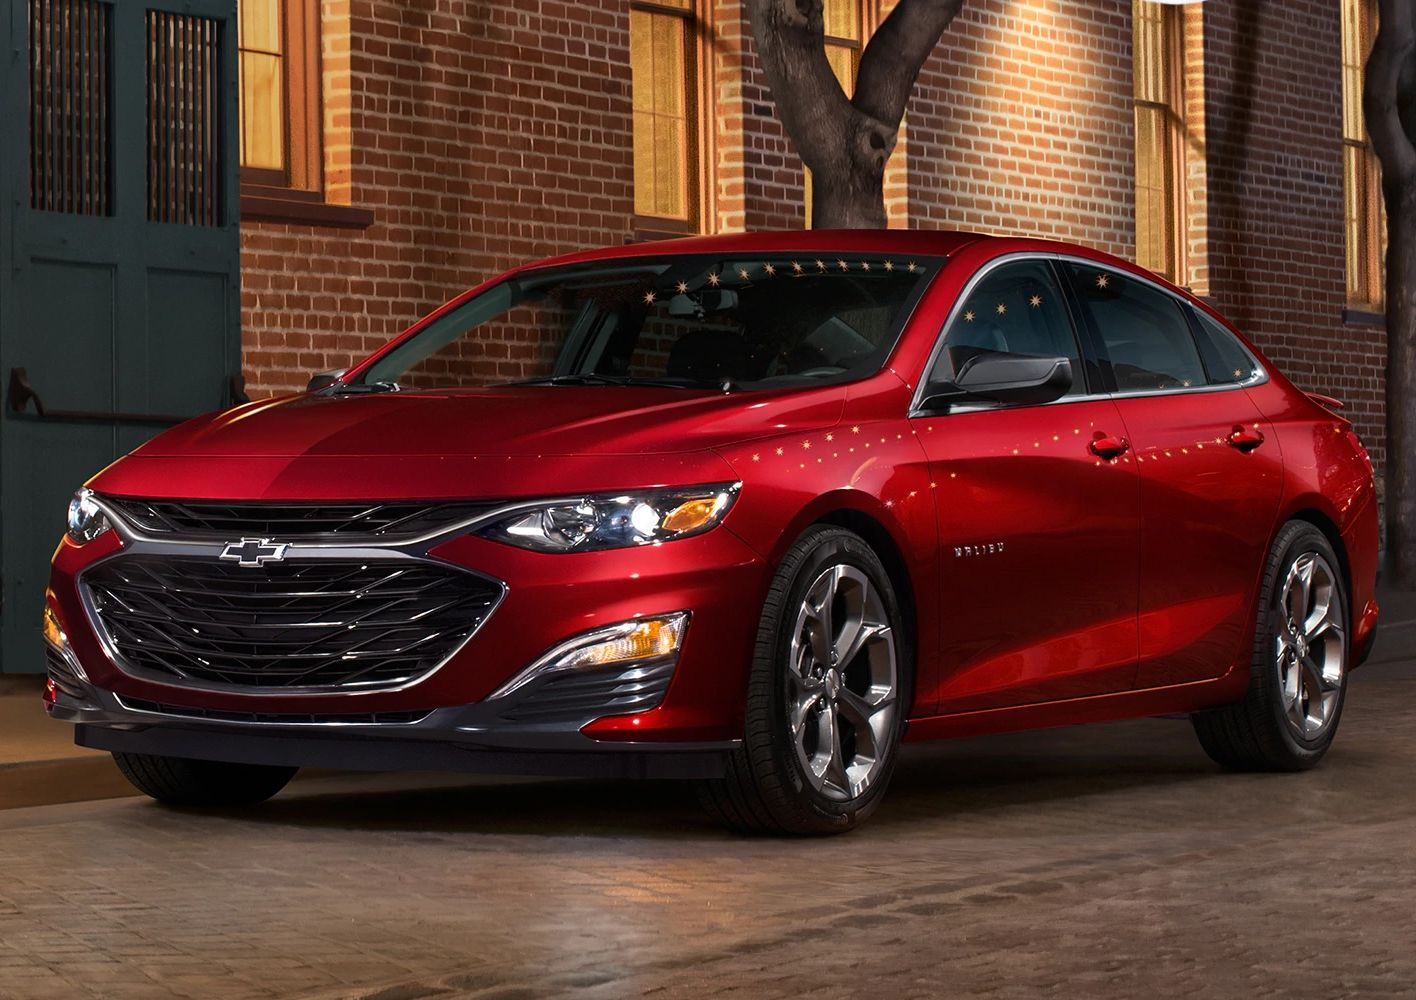 2019 Chevrolet Malibu for Sale near Homer Glen, IL